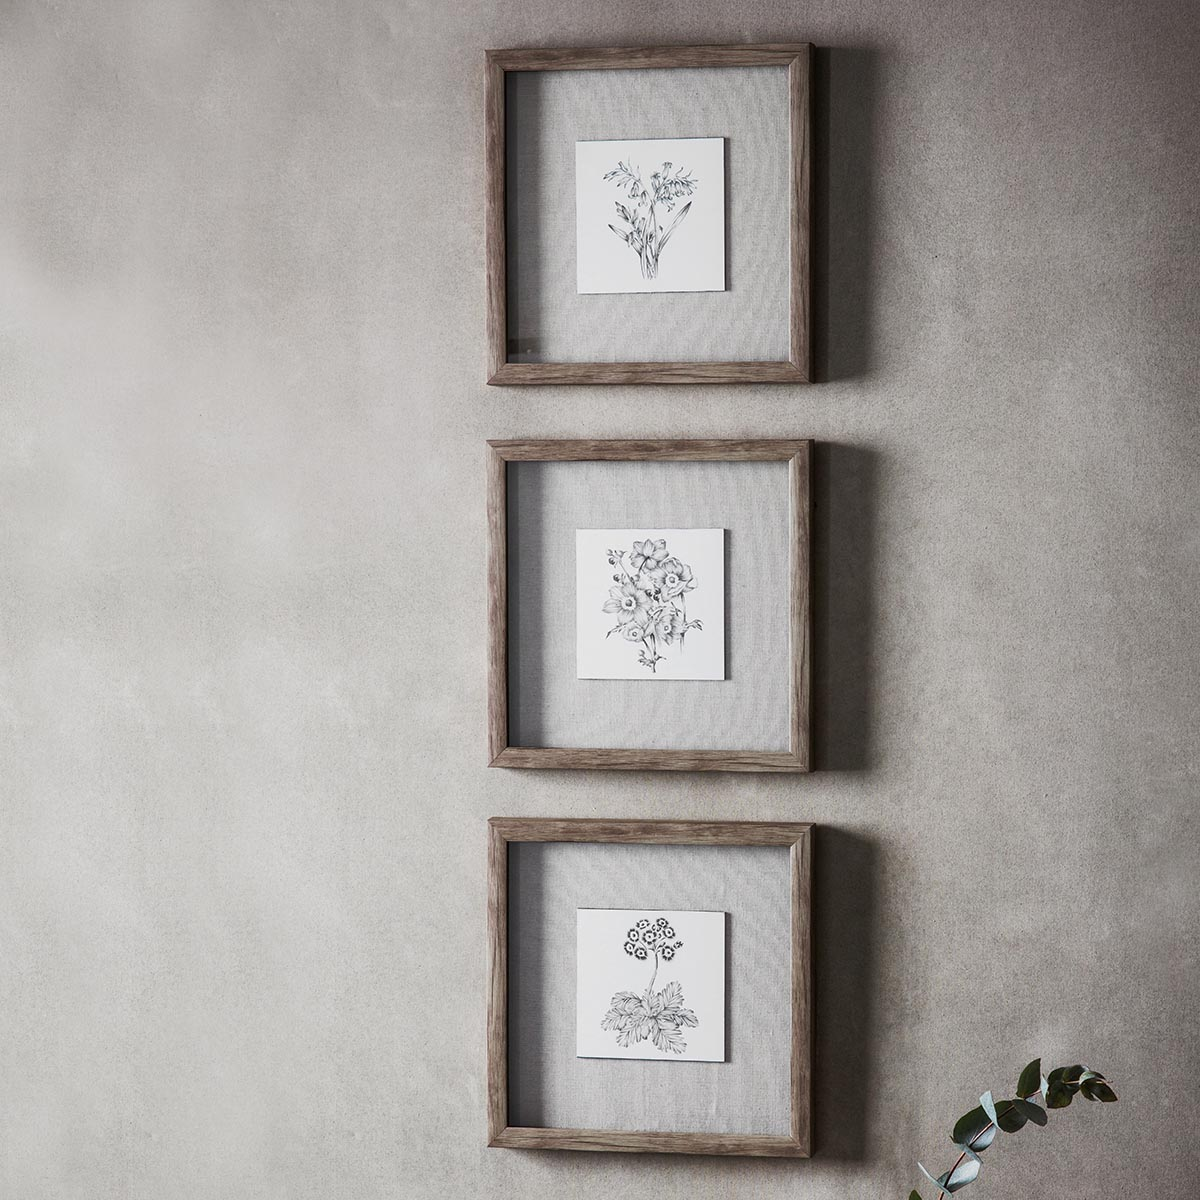 Monochrome Botanical Framed Art Trio 305x305mm - The House in Town